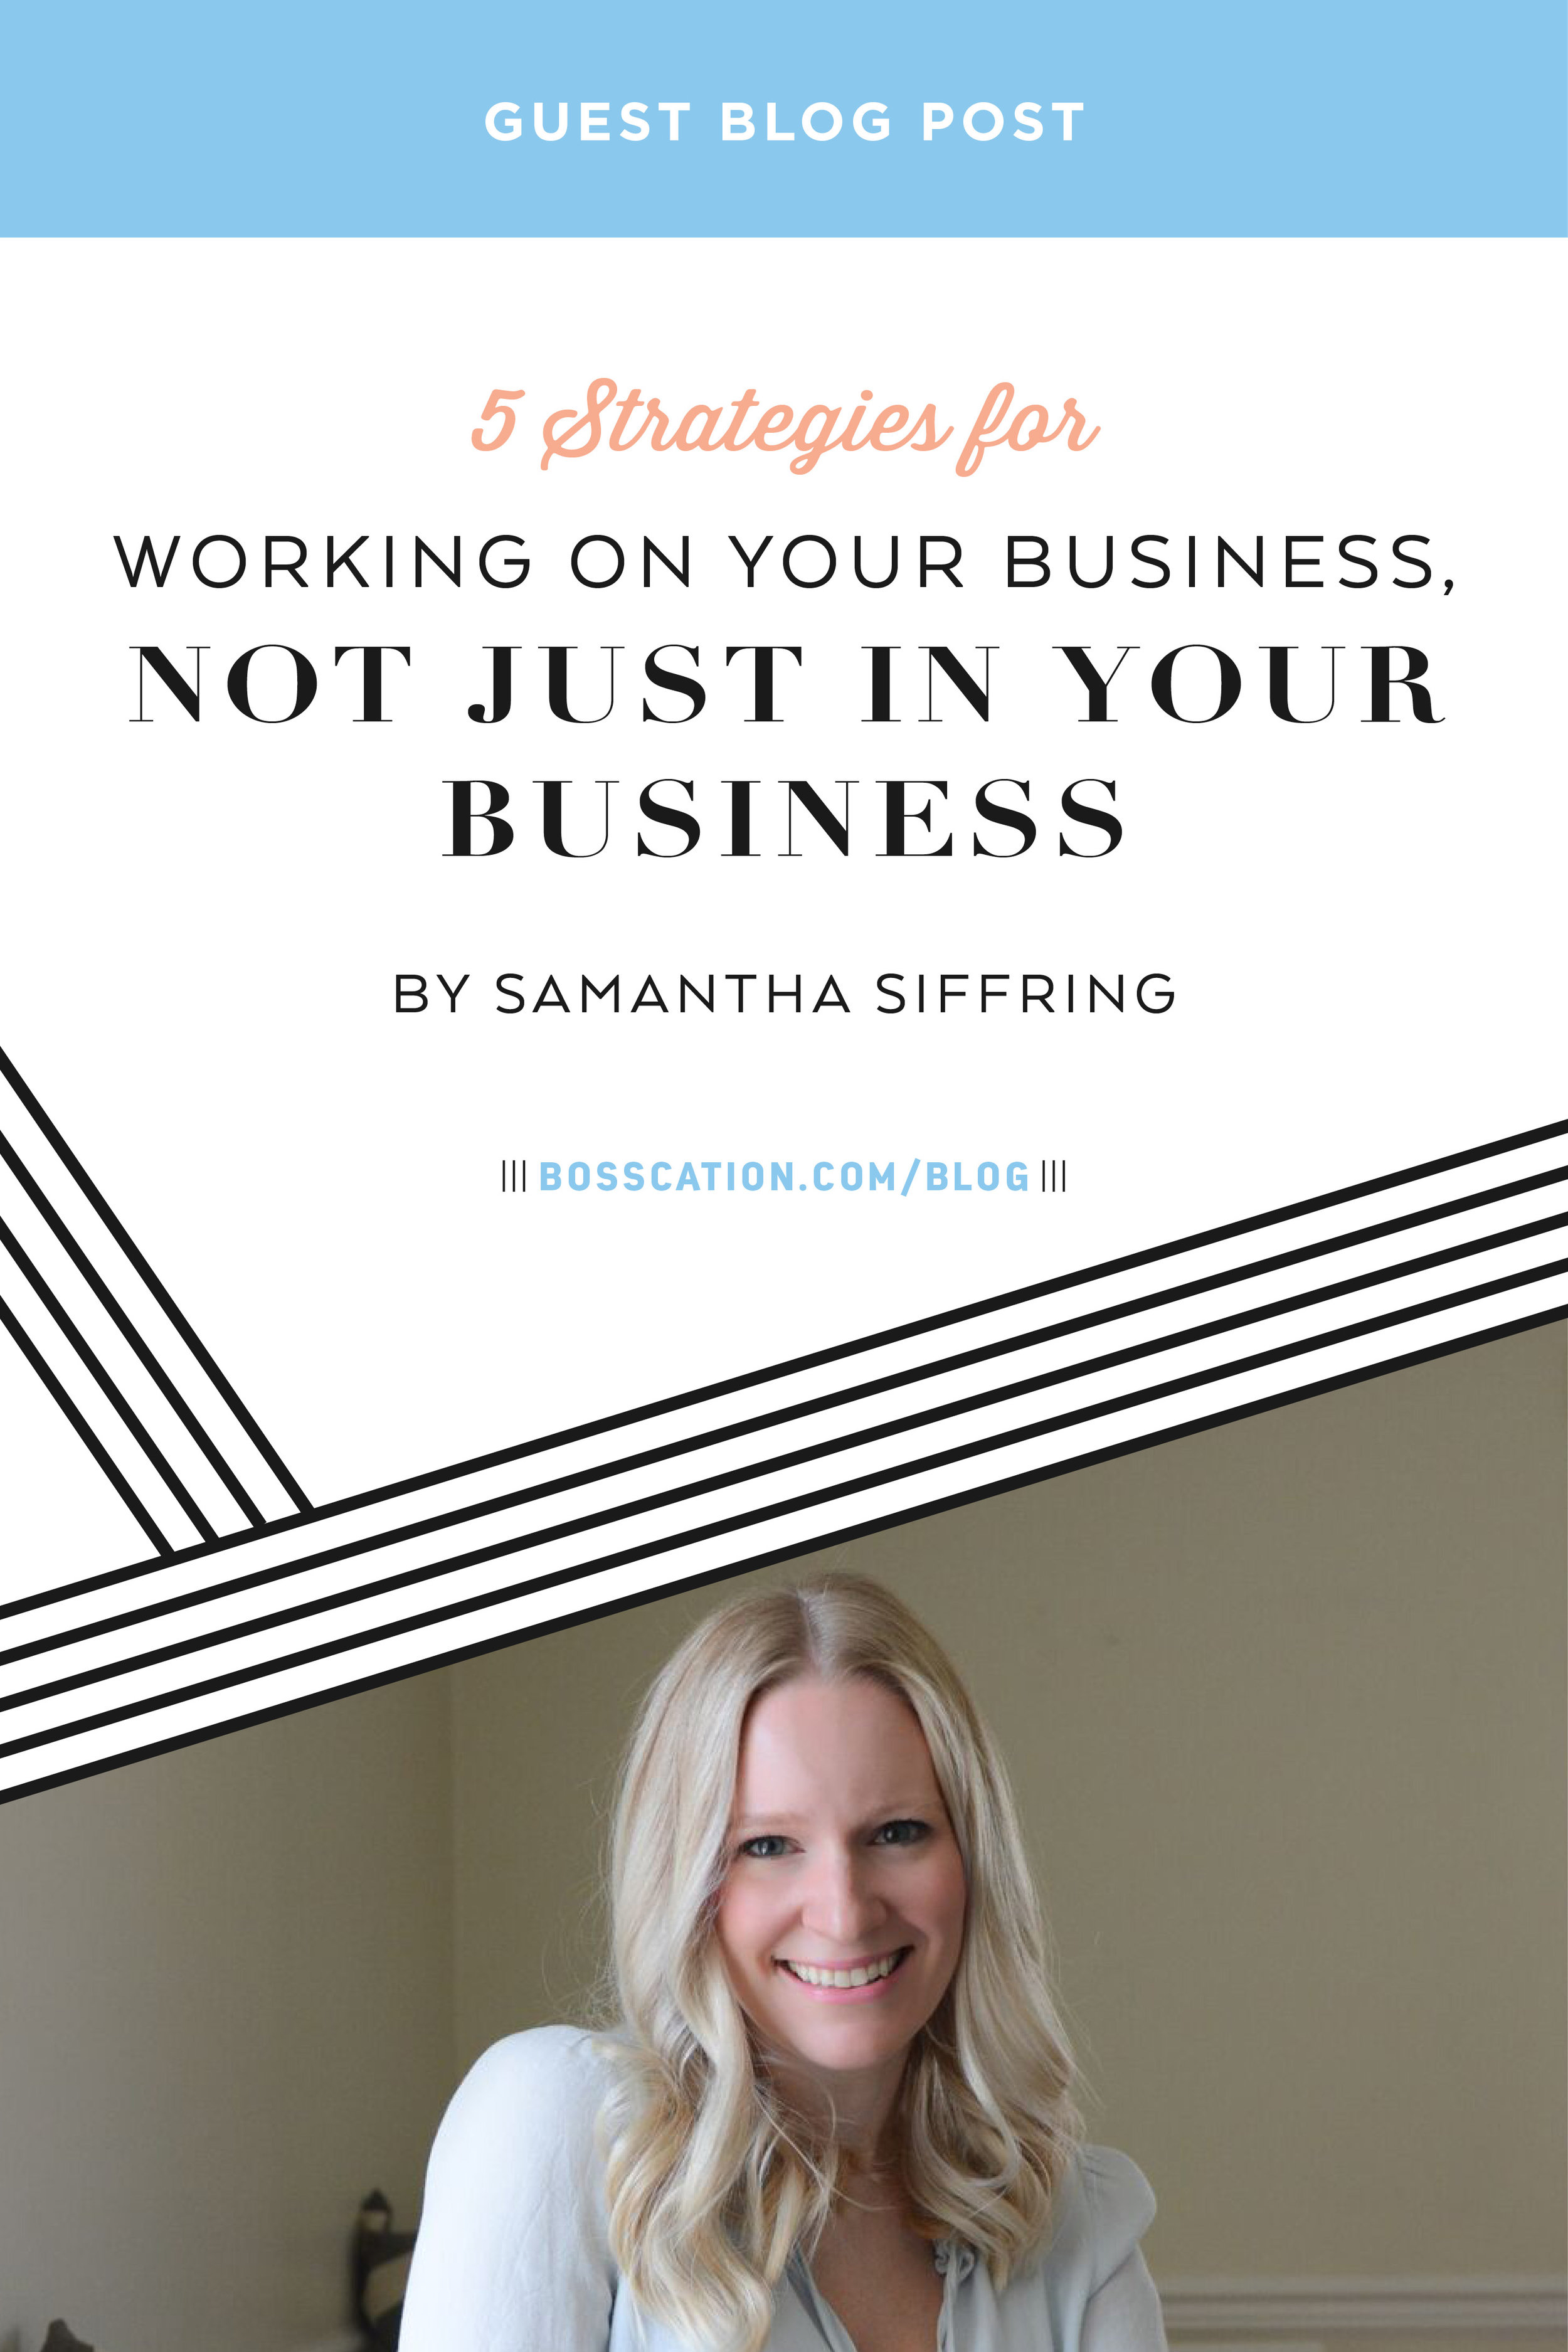 5 strategies for working ON your business, not just IN your business. Prepare your business with systems, processes, management and vision-casting so your business doesn't run out of income when your current clients dry up.